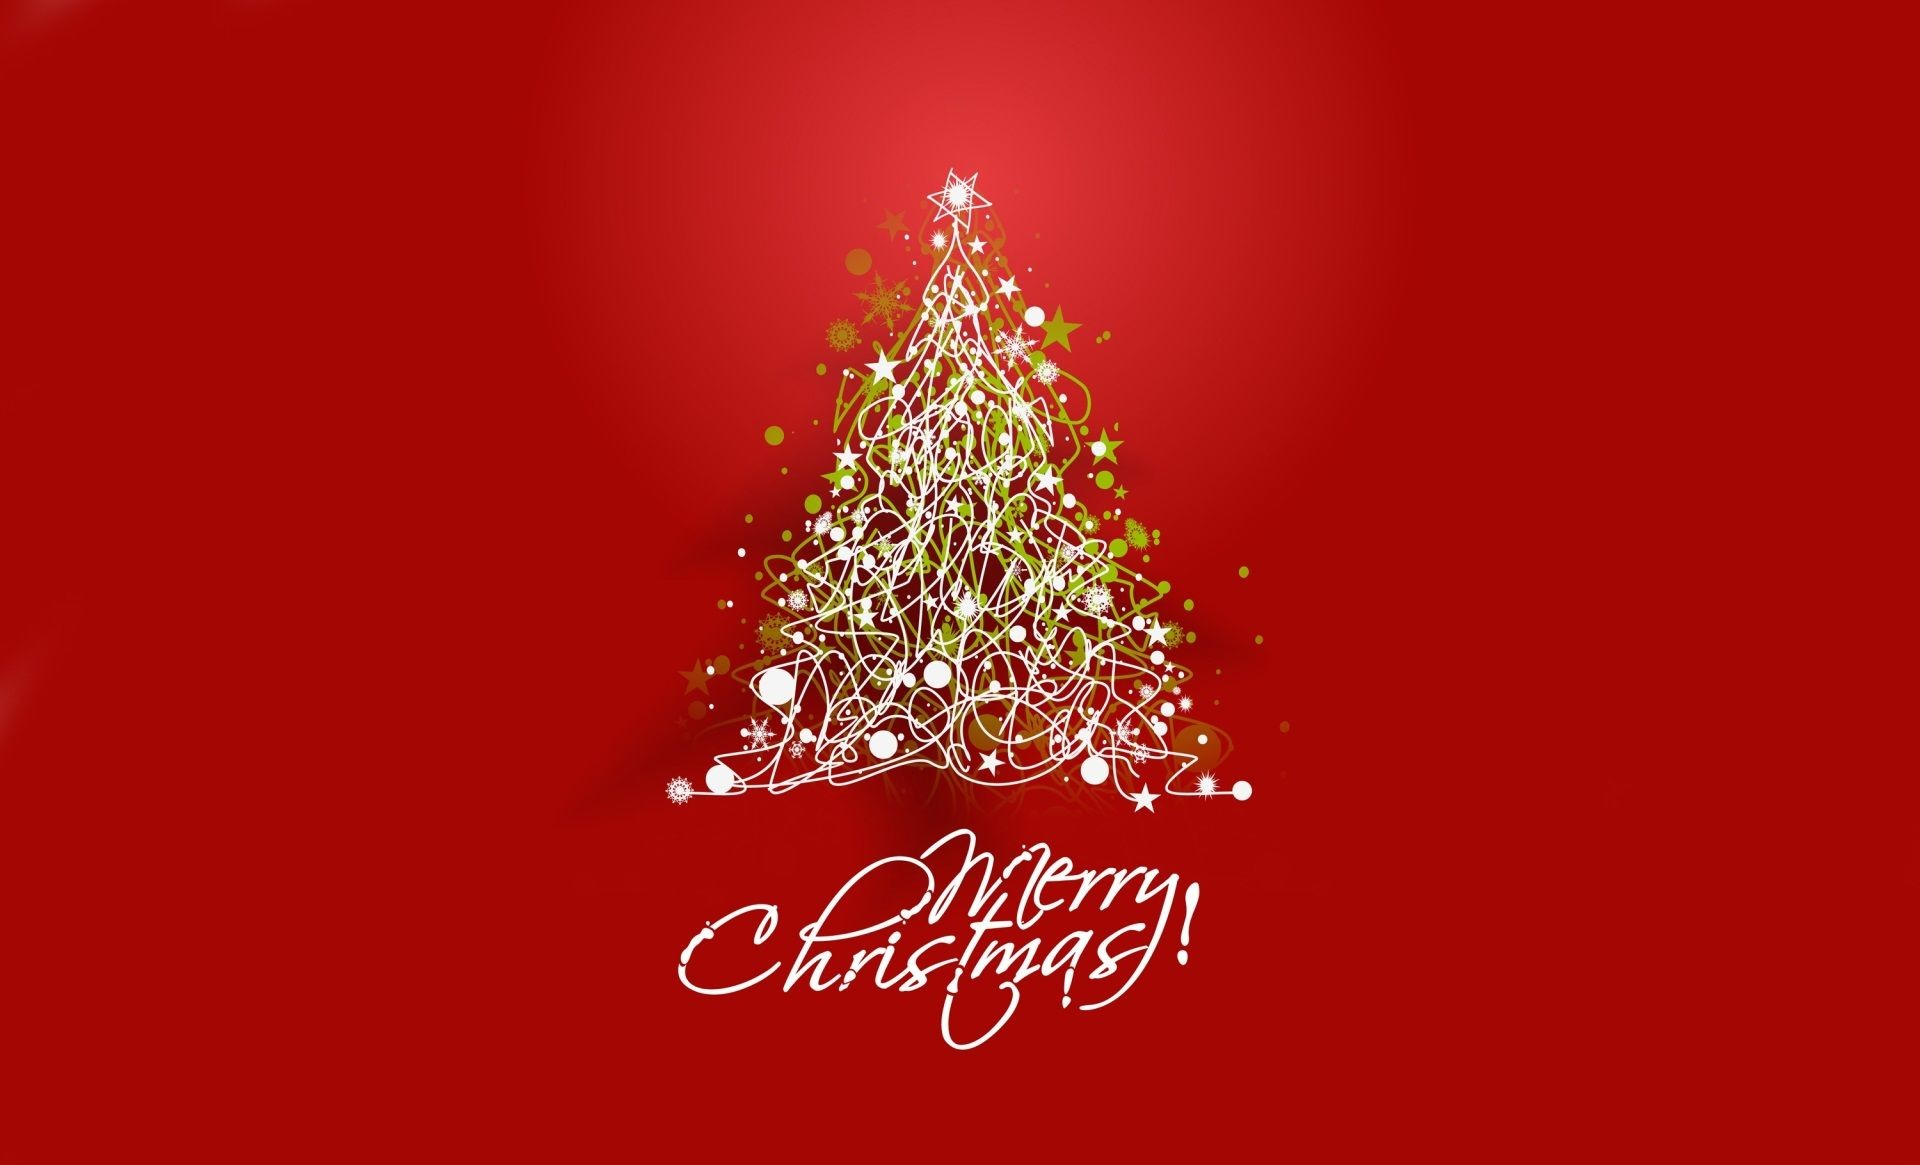 Merry Christmas 2018 Wallpapers (73+ background pictures)